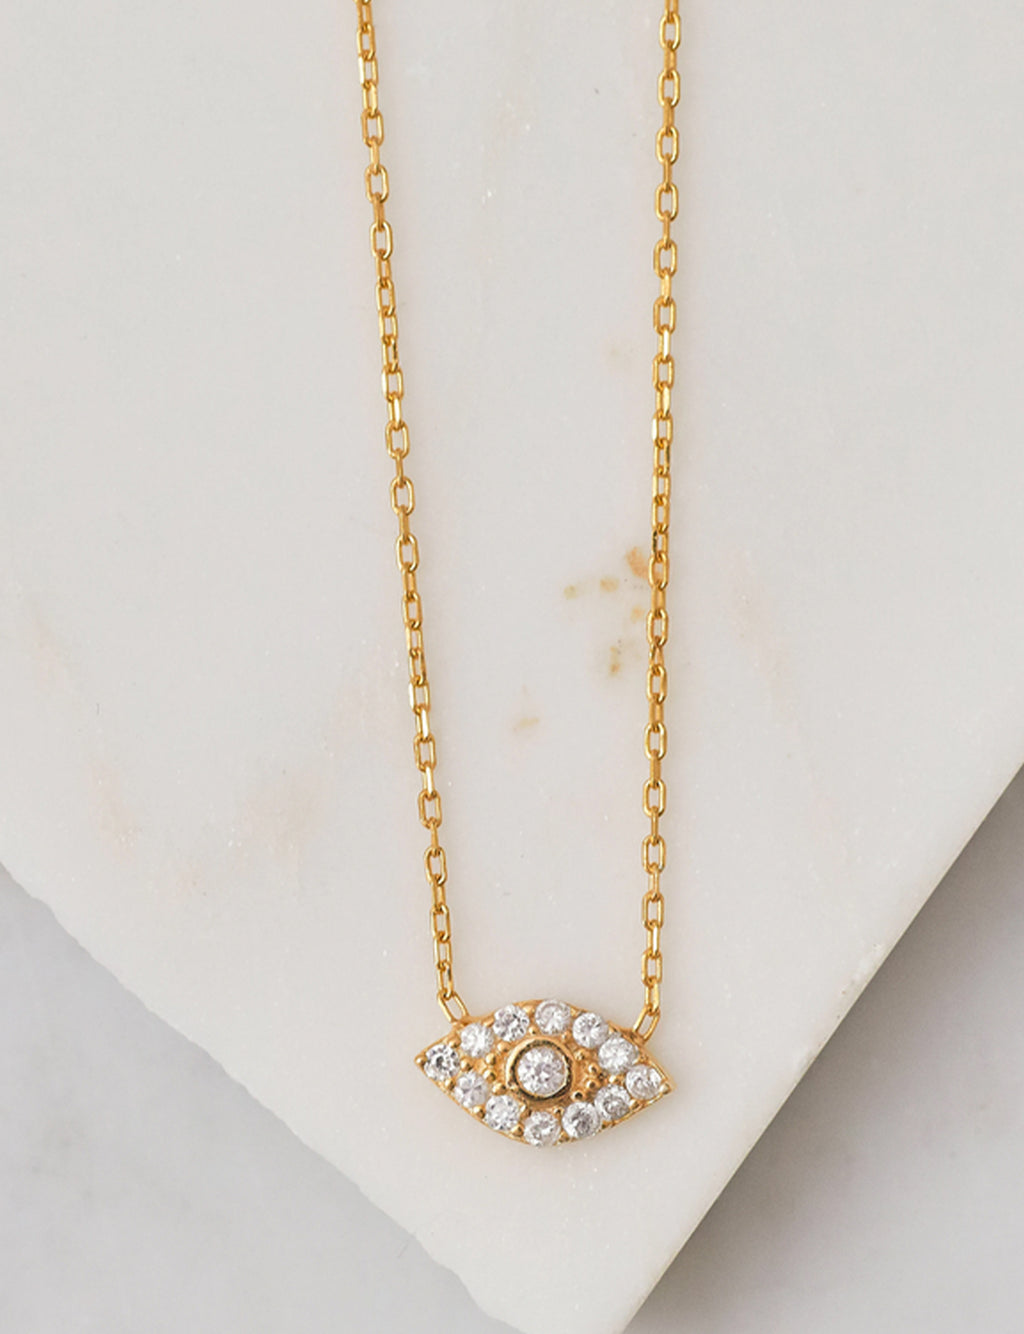 Natalie B Evil Eye Pave CZ Charm Necklace